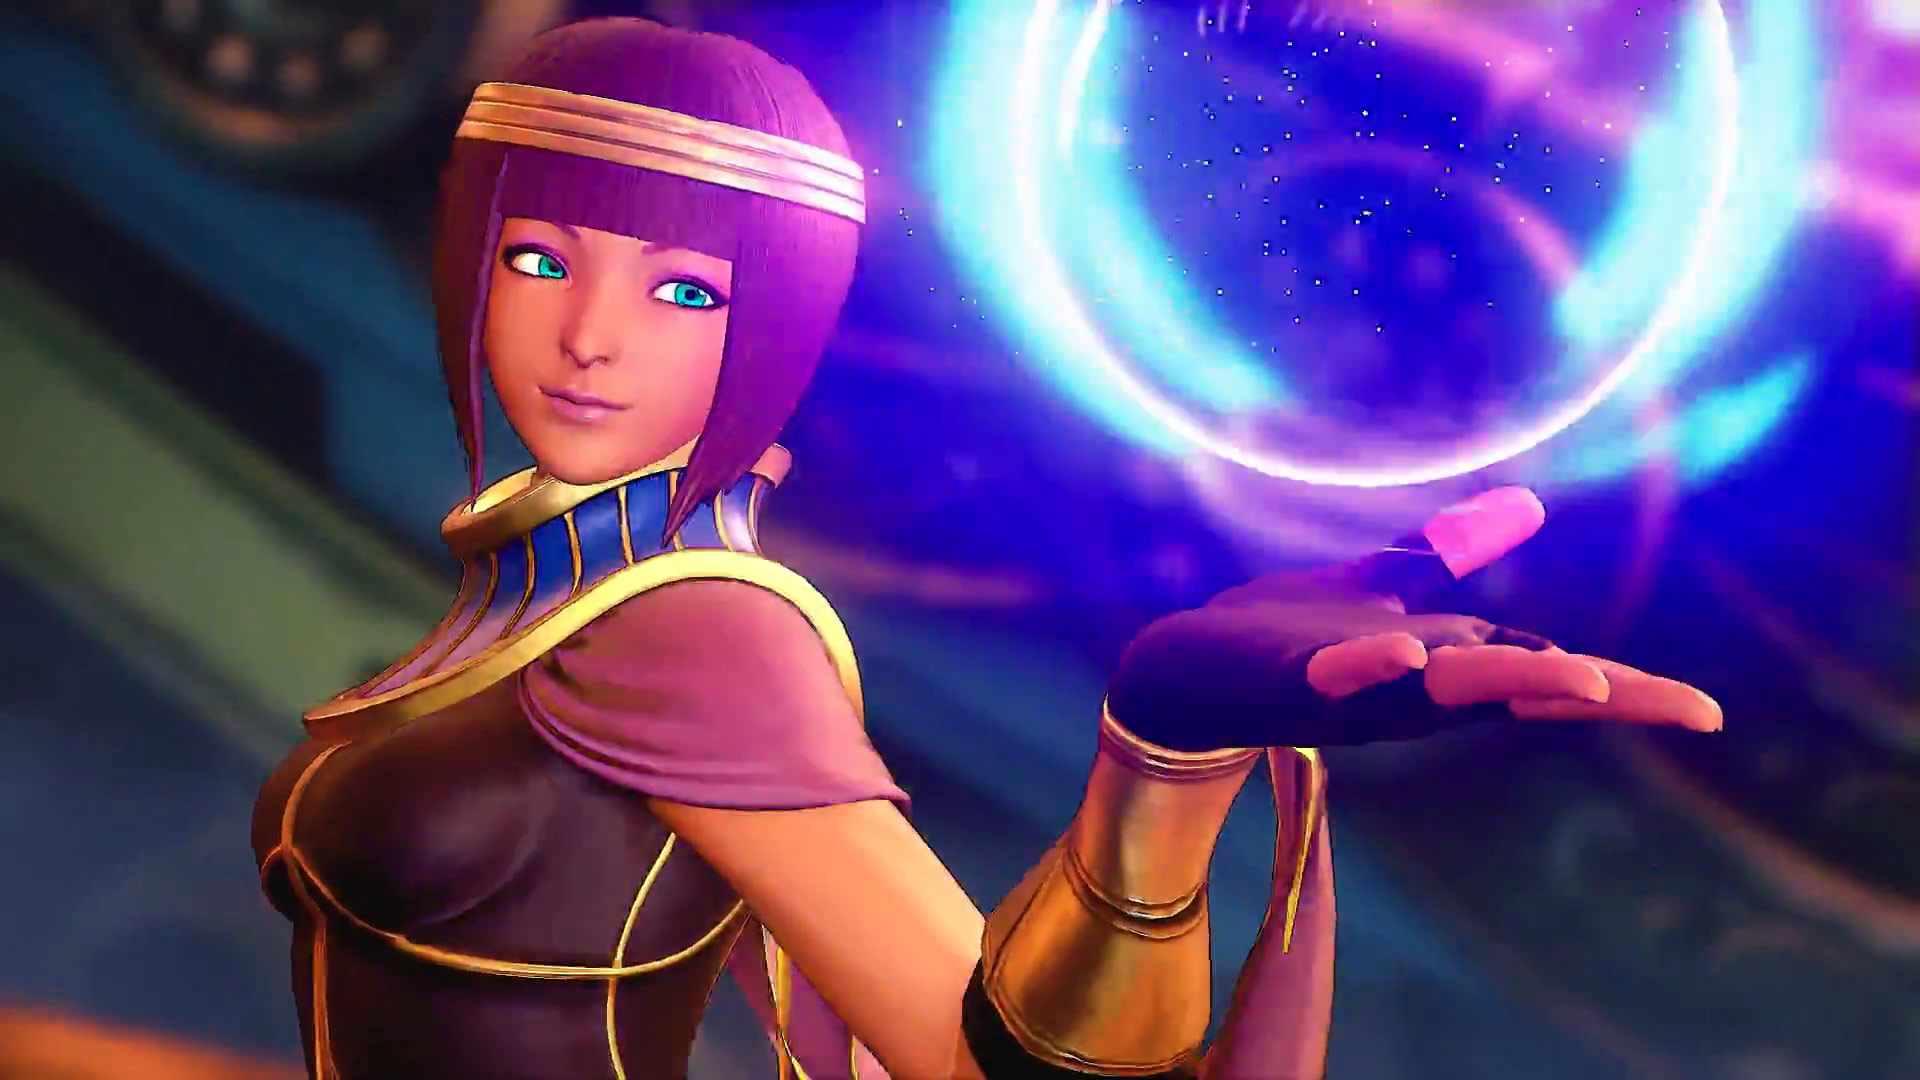 Menat announced for Street Fighter 5 reveal images 3 out of 6 image gallery